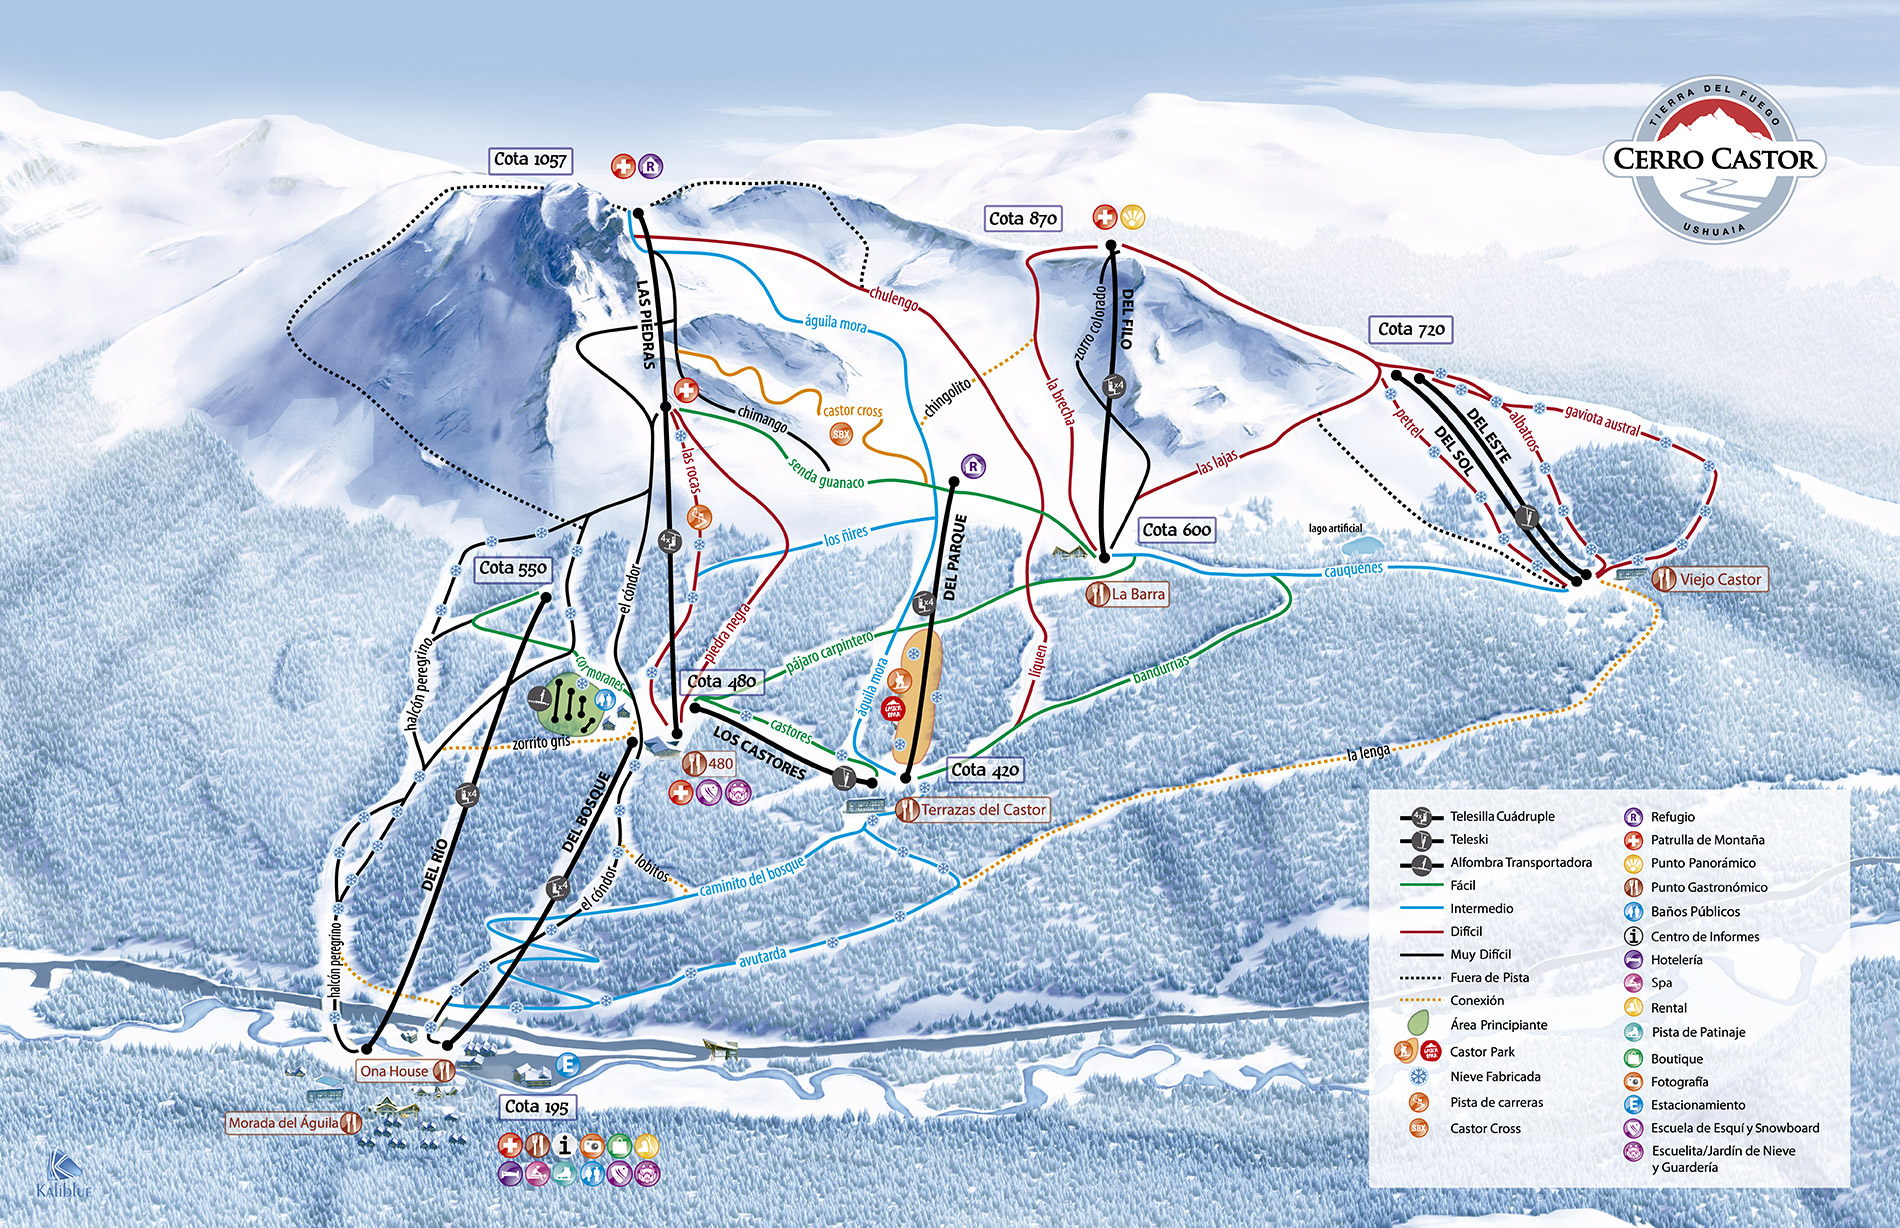 Cerro Castor Ski Resort Guide Location Map Cerro Castor Ski - Argentina map ushuaia